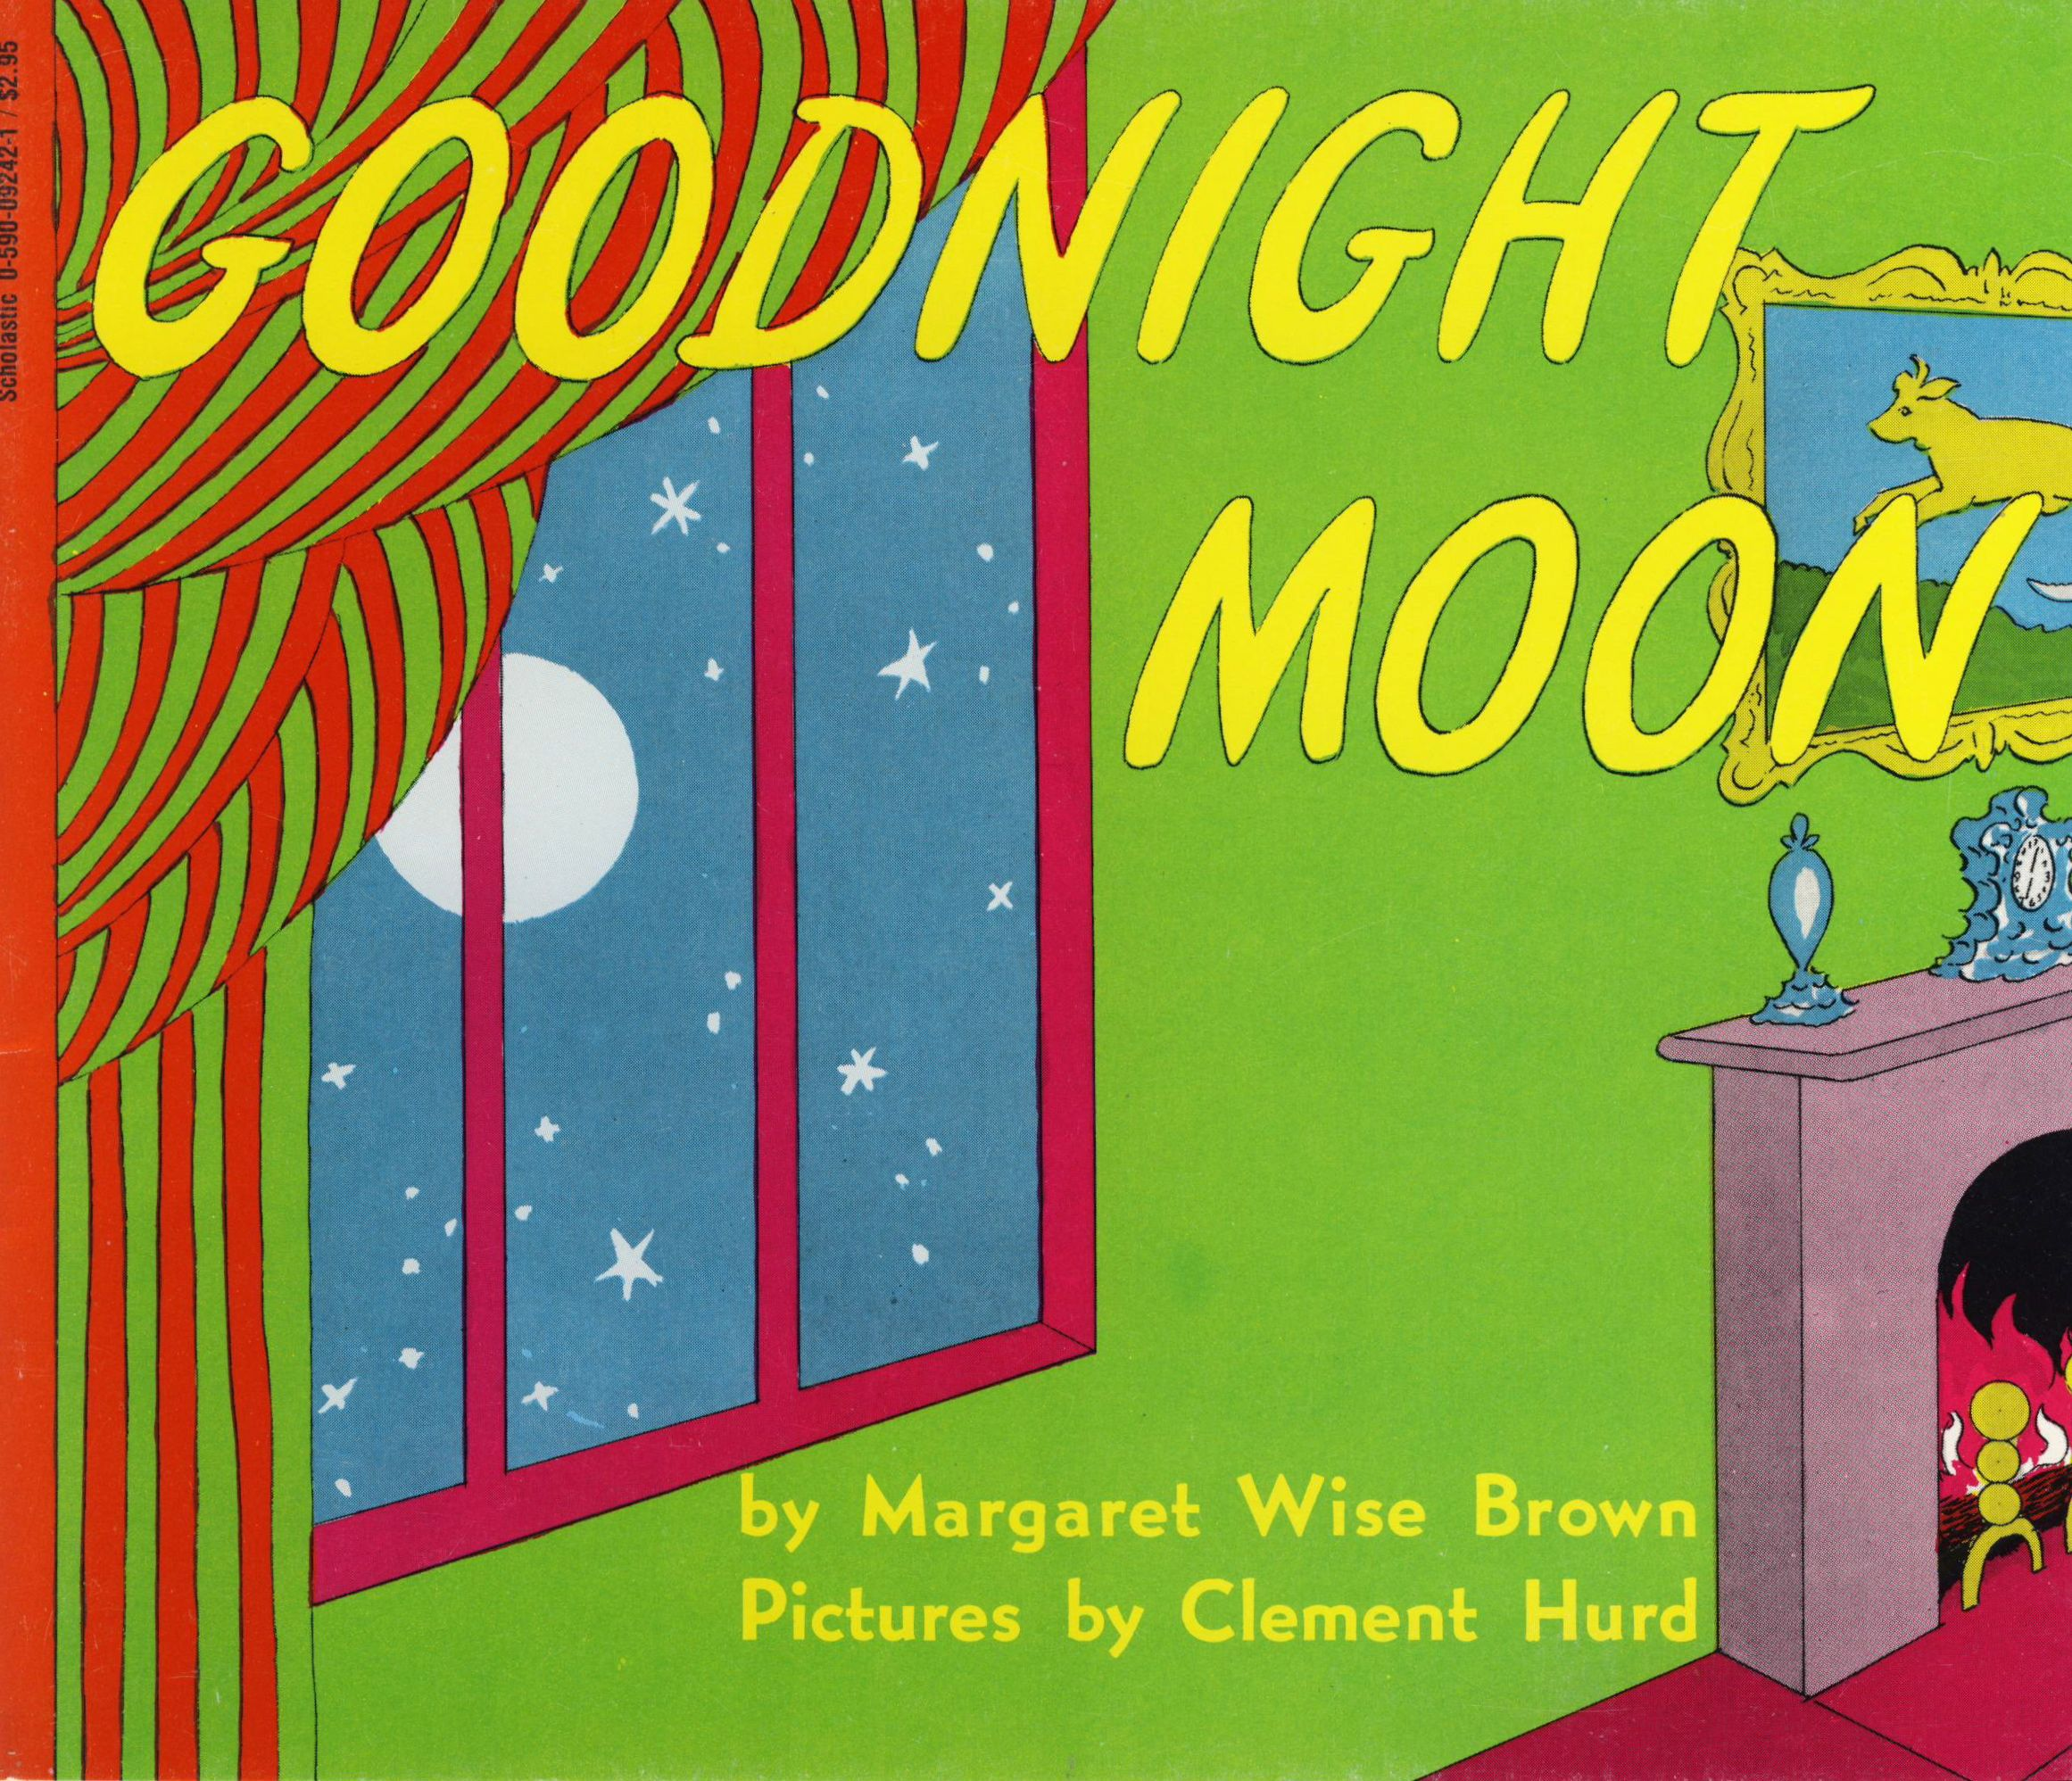 And of course, no top-10 list of books for baby would be complete without Goodnight Moon, a beloved bedtime story since it was first published in 1947.